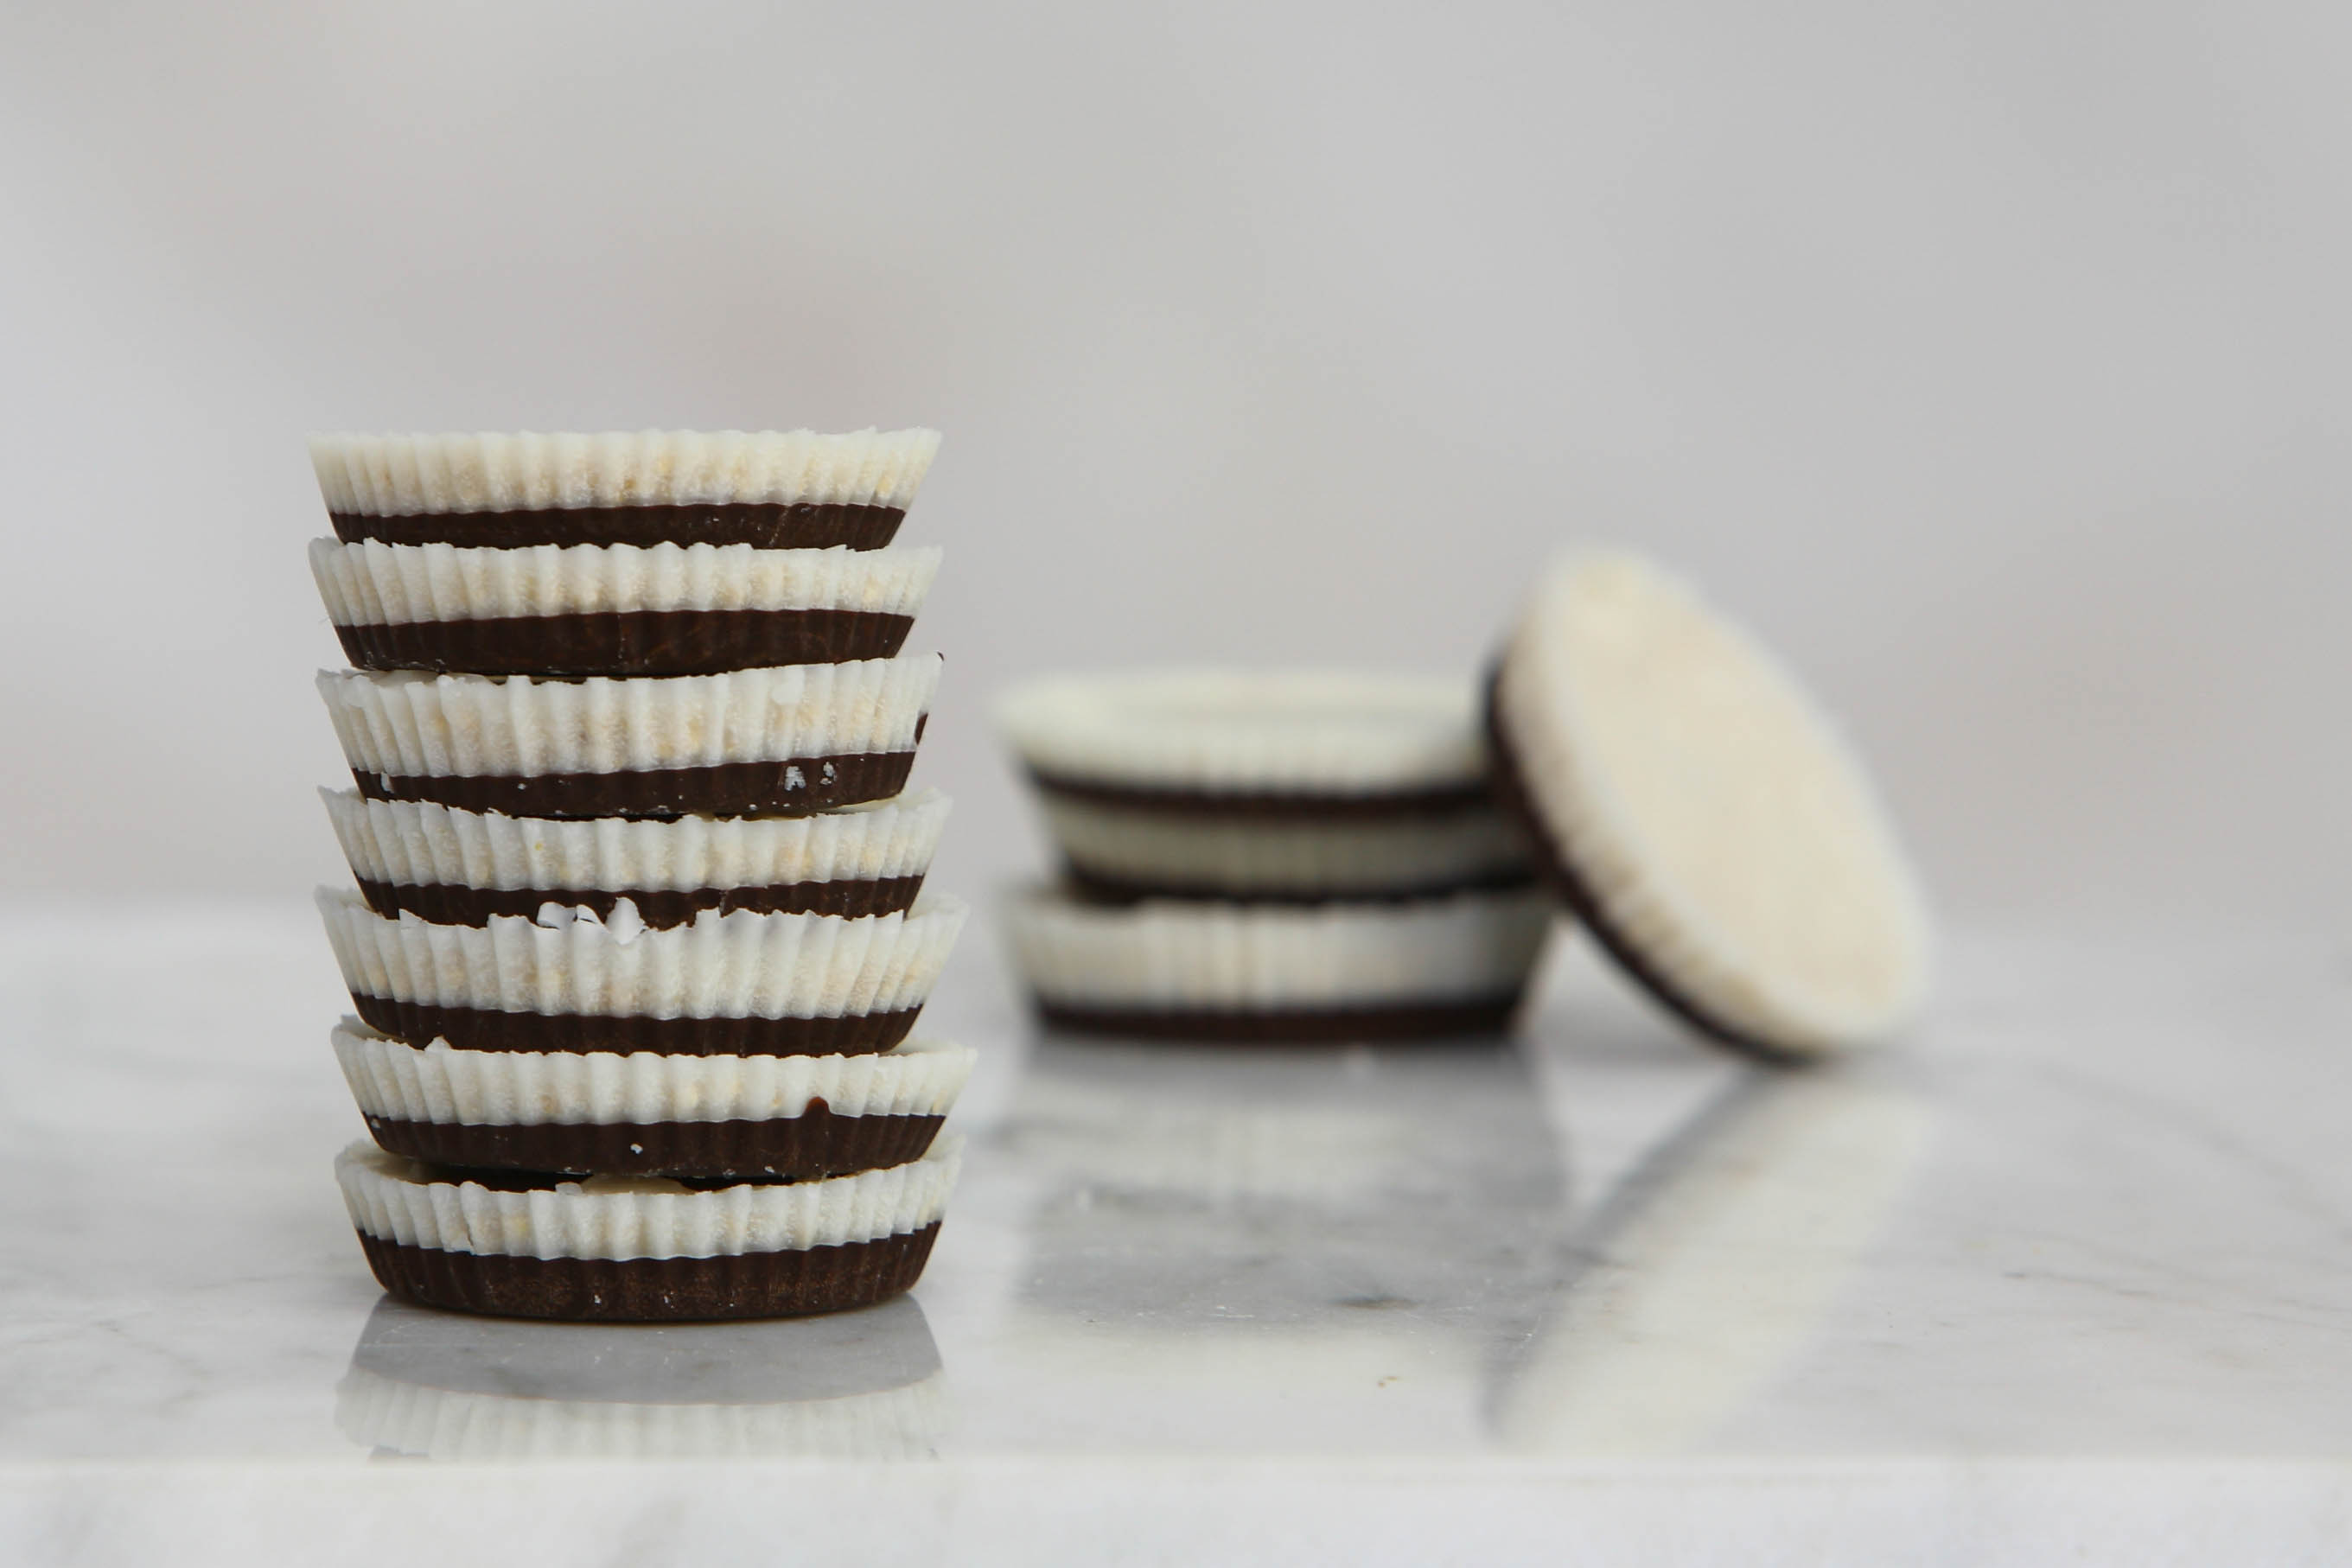 5-ingredient crunchy peppermint patties